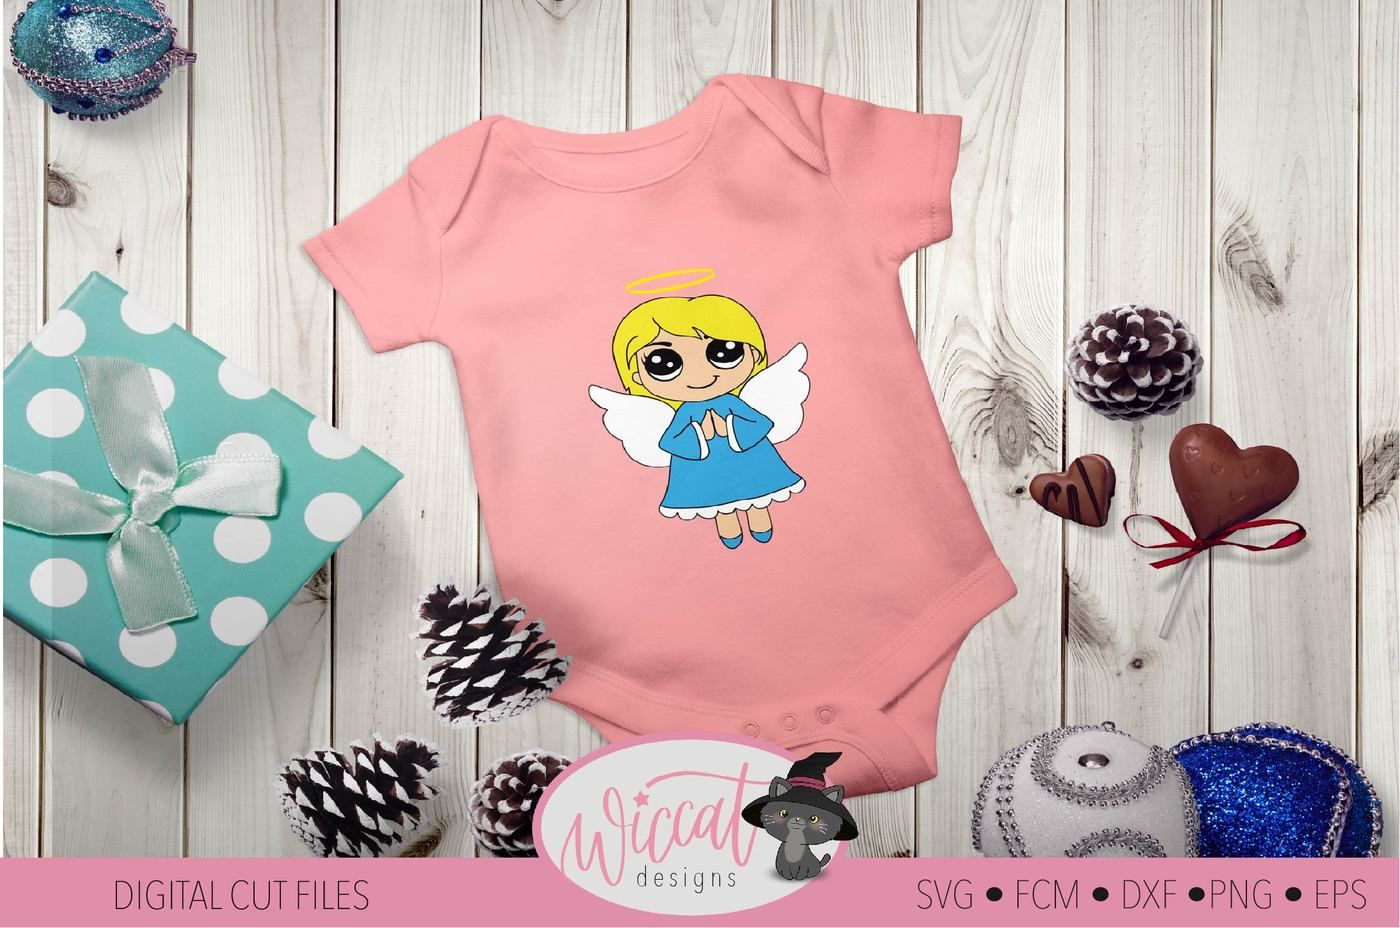 Praying Christmas Angel Kawaii Angel By Wiccatdesigns